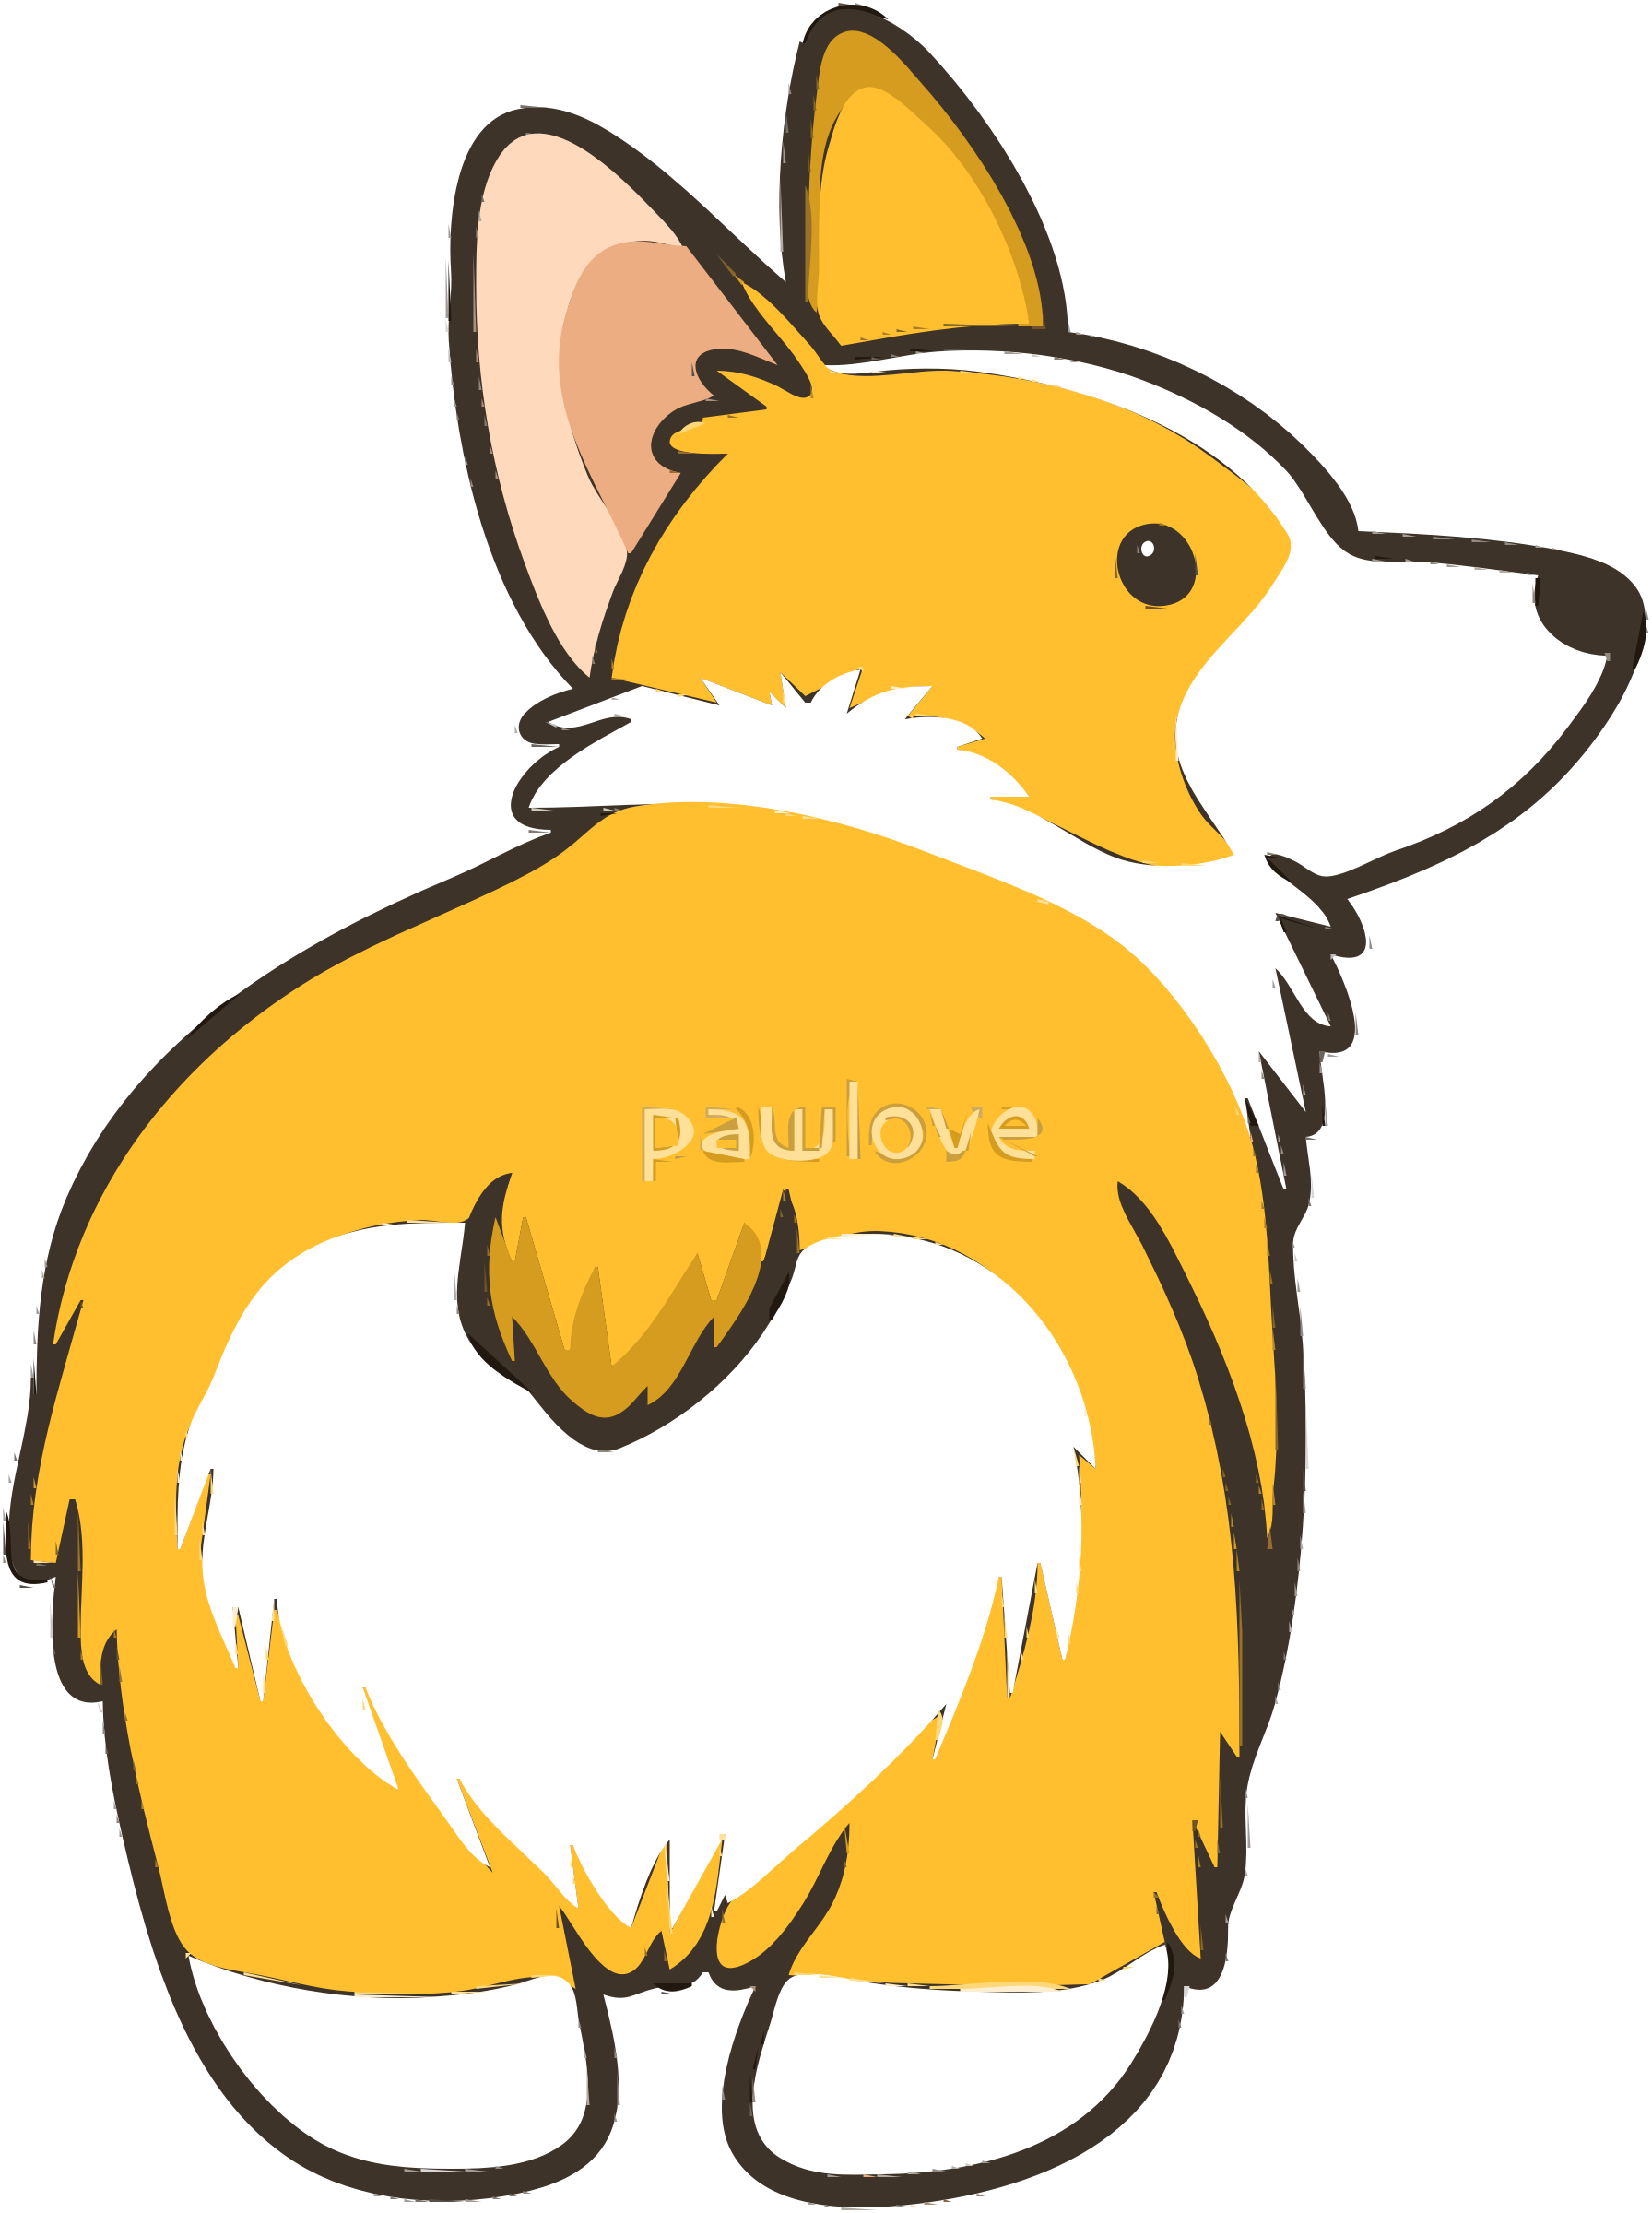 corgi vector clipart image free stock photo public domain photo rh goodfreephotos com vector clip art free download vector graphics clipart free download